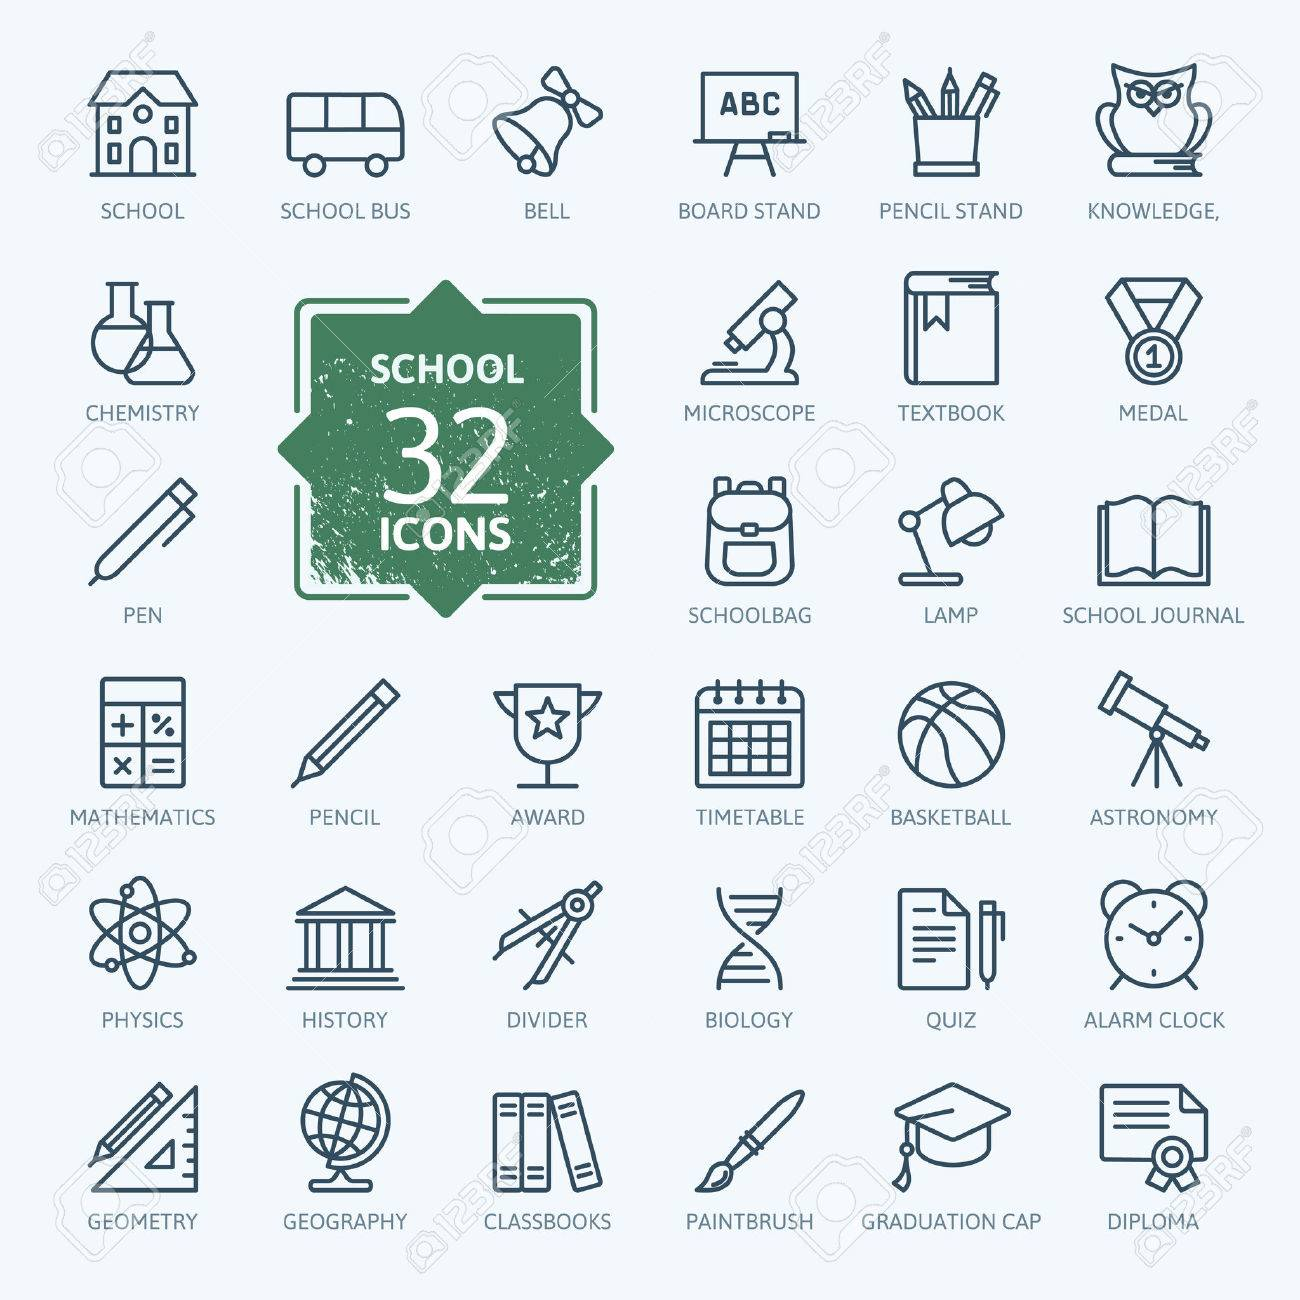 Outline icon collection - School education - 52871106